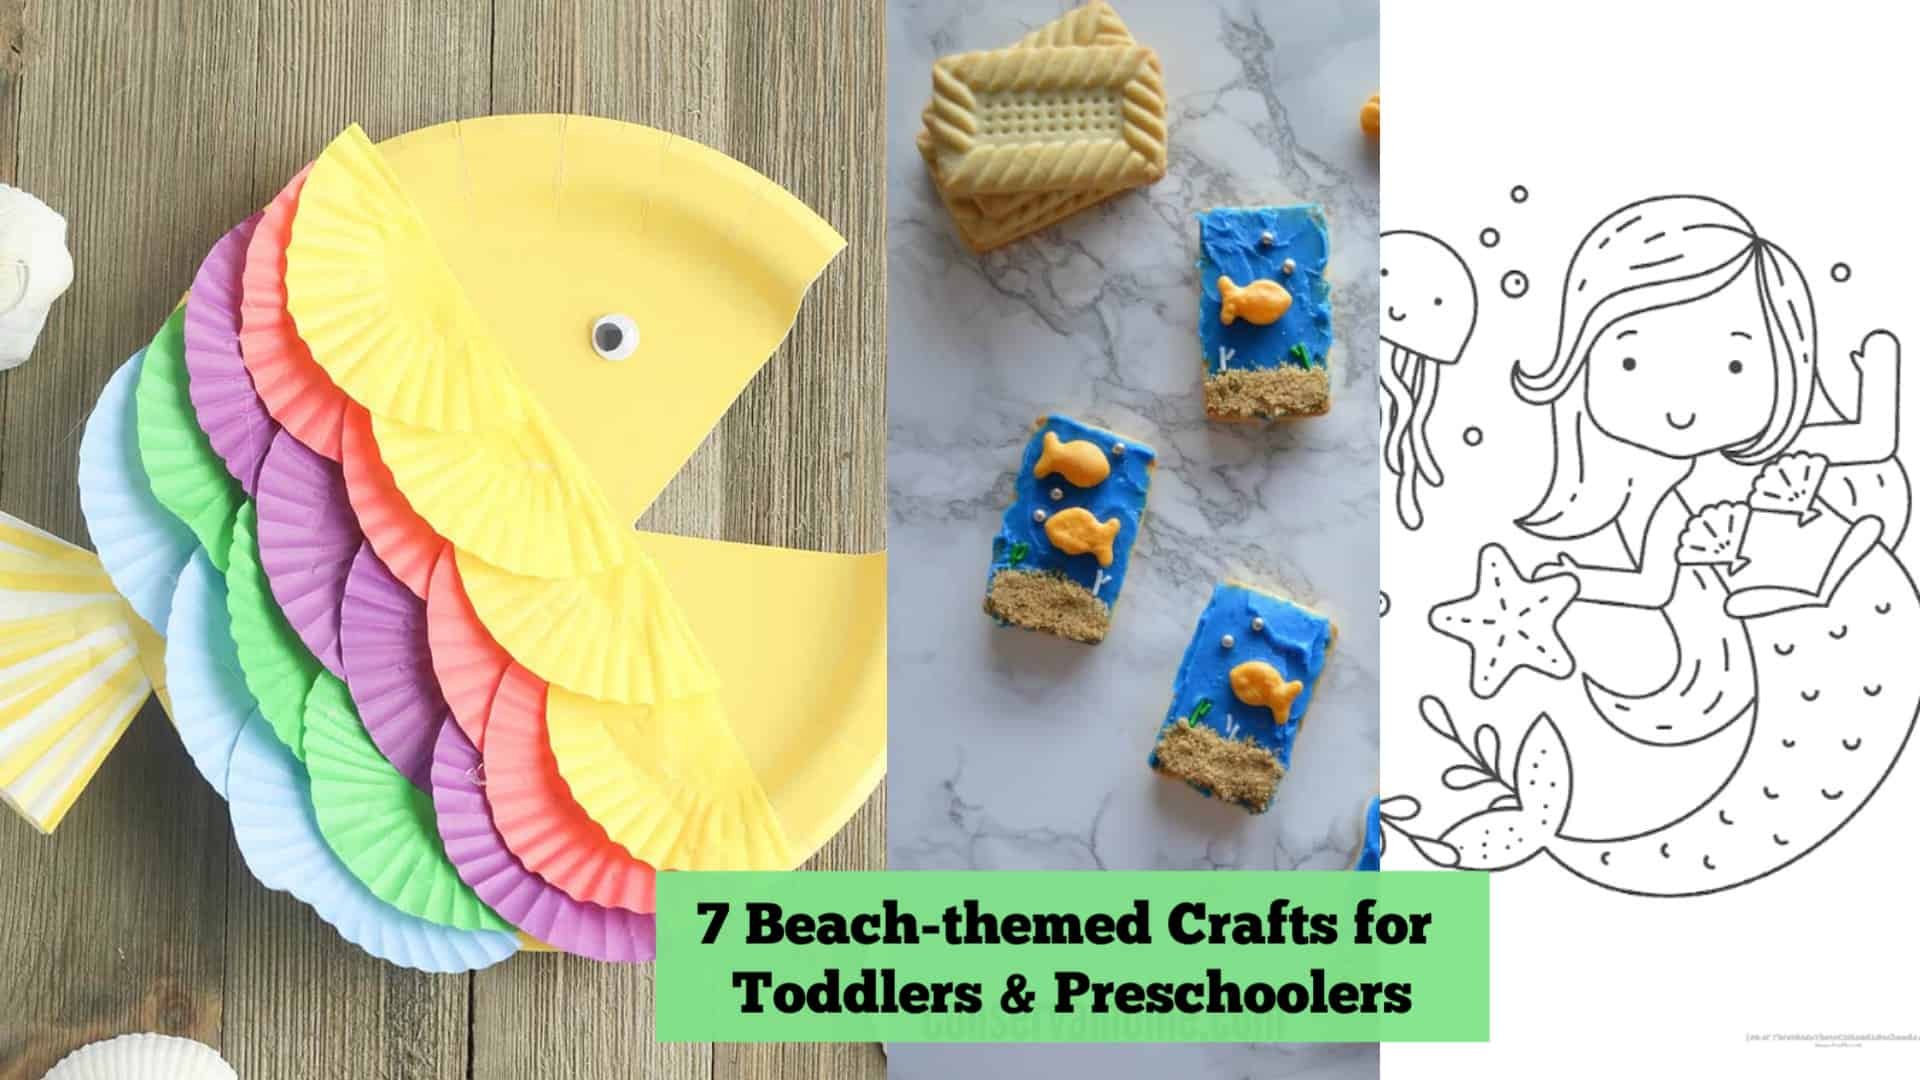 7 Beach Themed Crafts for Toddlers and Preschoolers